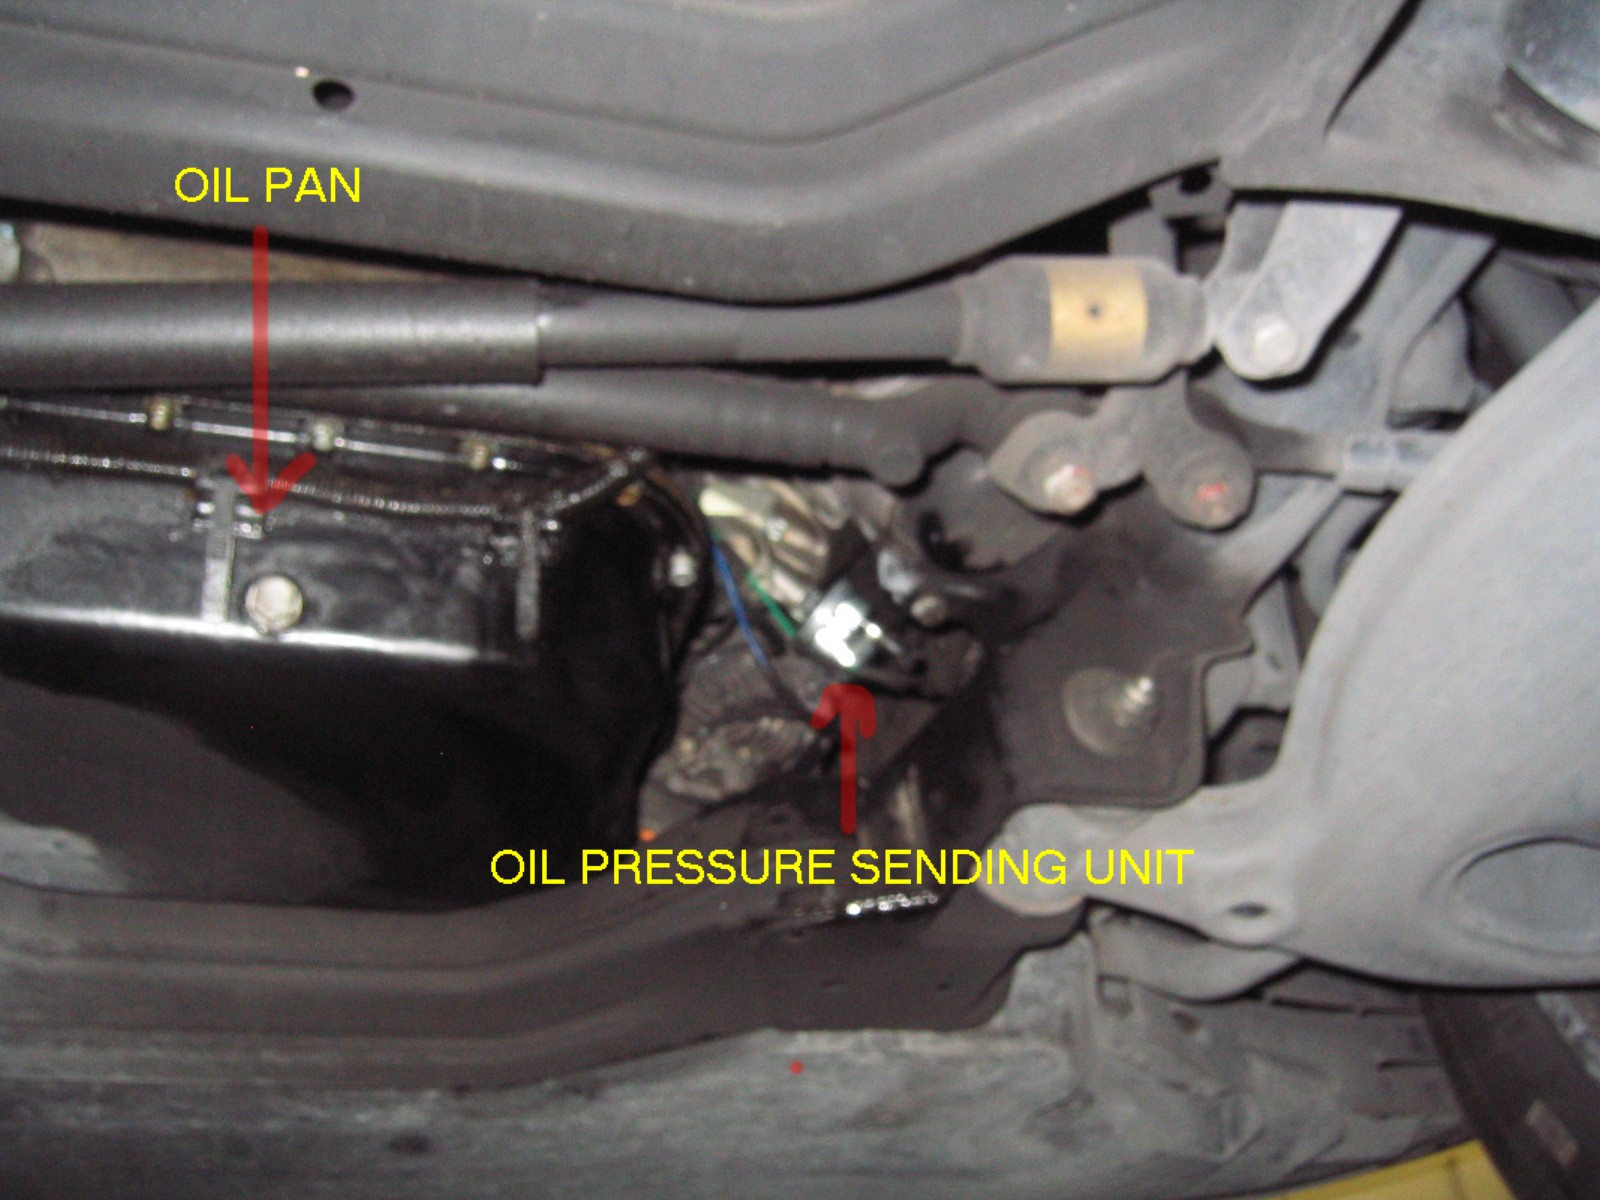 2001 Chevy S10 Oil Filter Location Wiring Diagram Photos For Help